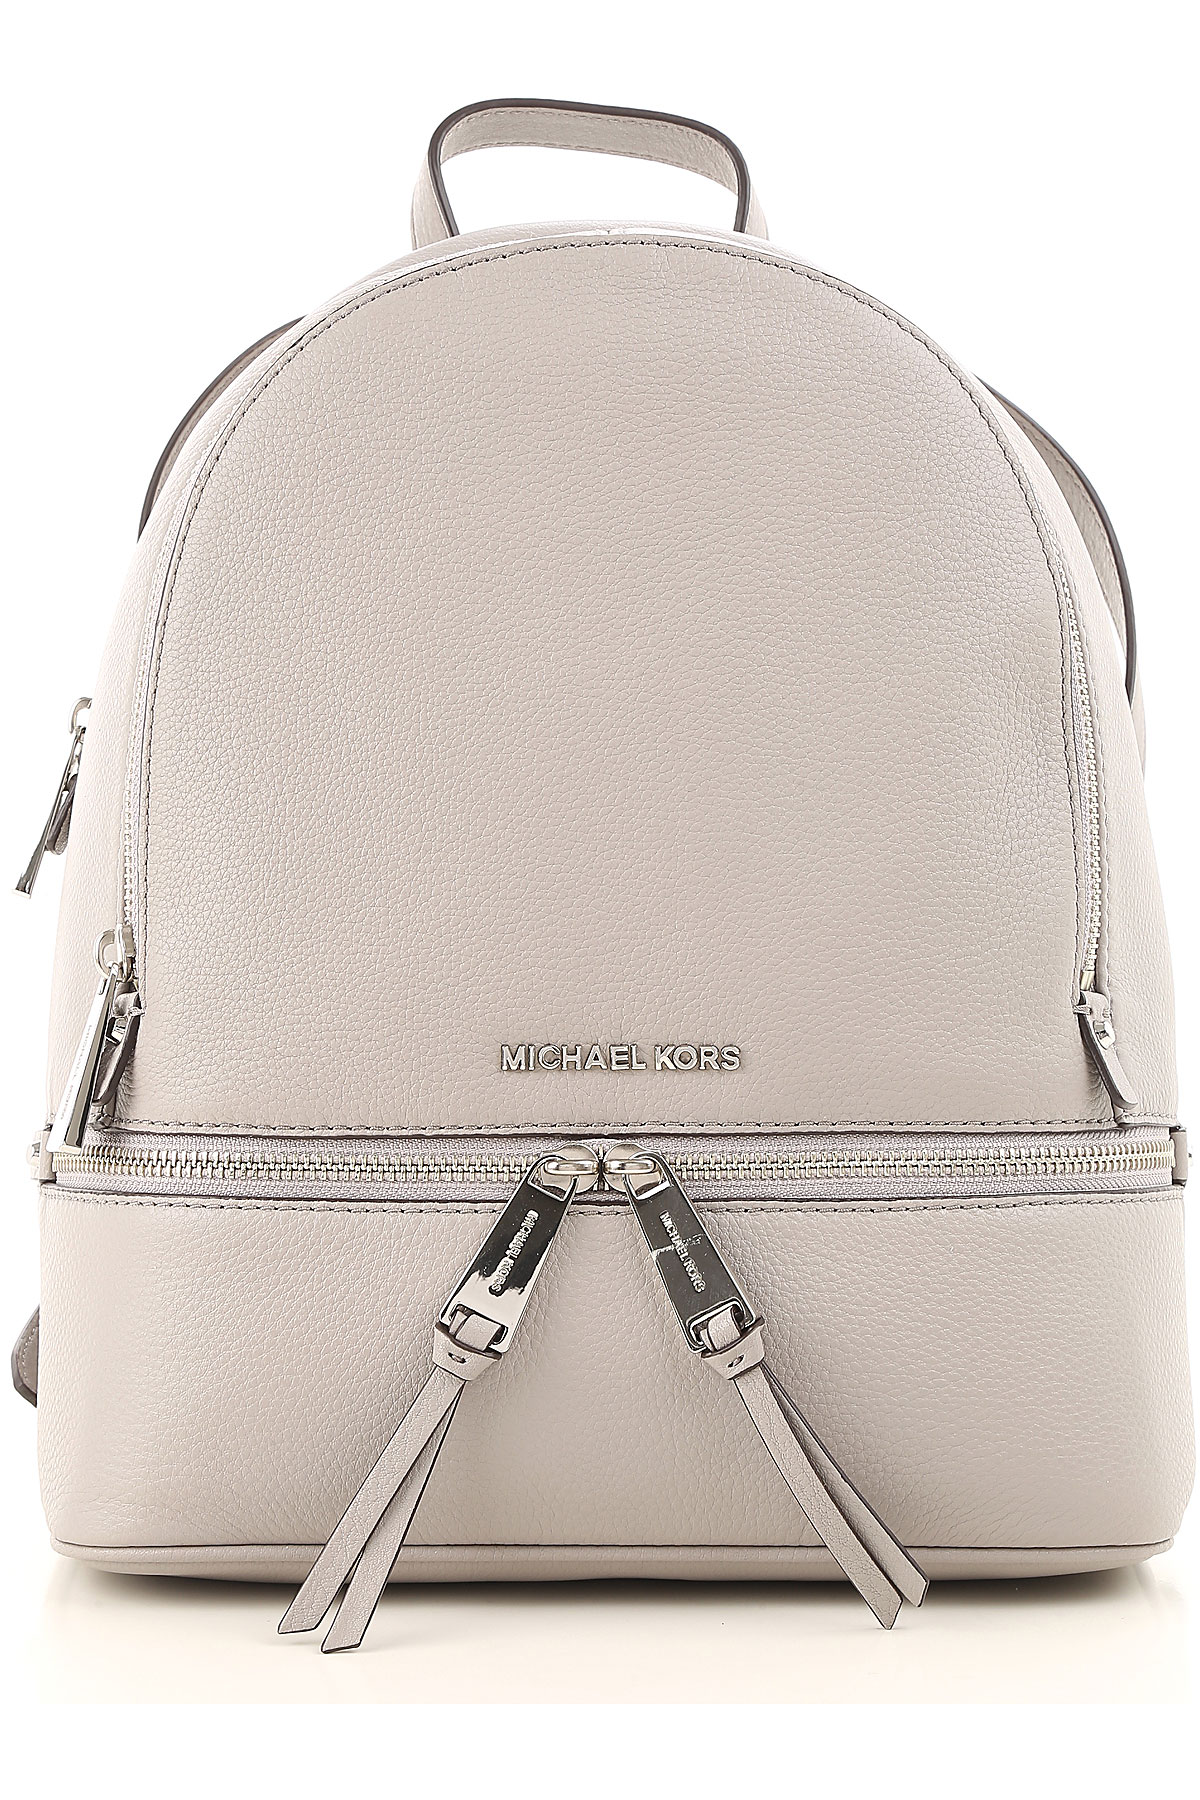 Image of Michael Kors Backpack for Women On Sale, Pearl Grey, Leather, 2017